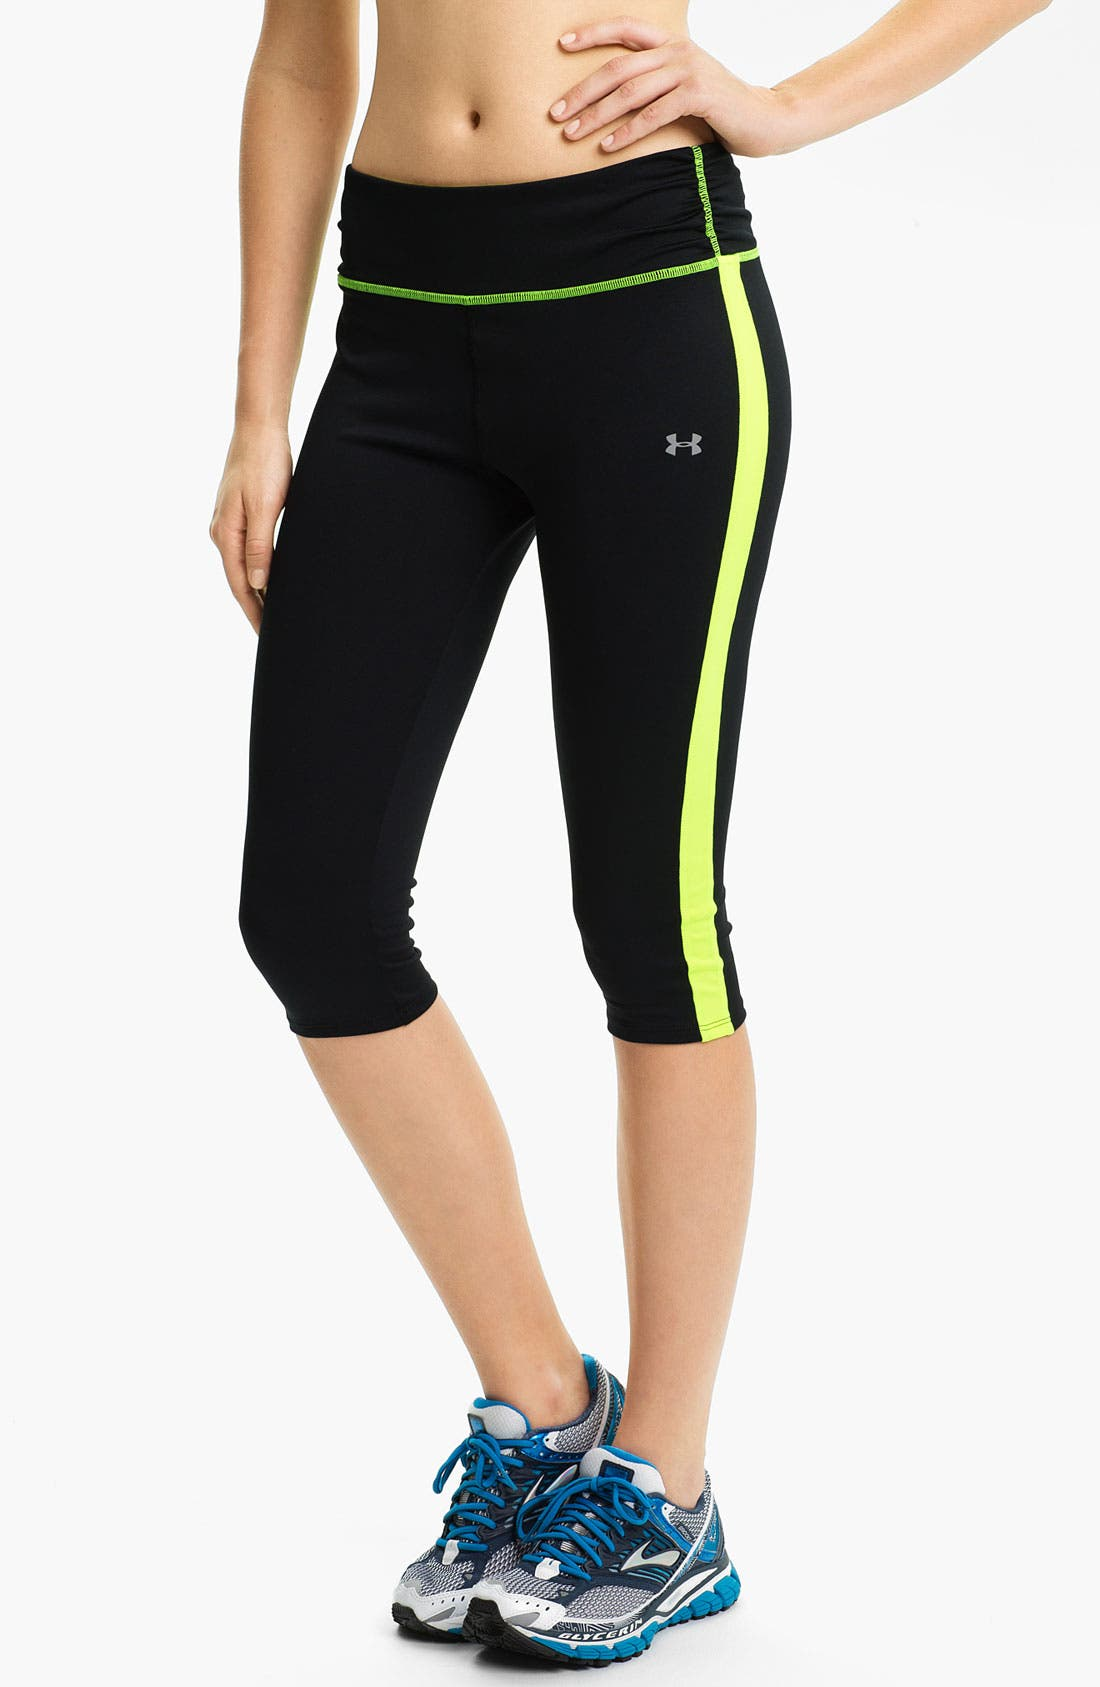 Alternate Image 1 Selected - Under Armour 'Escape' Capris